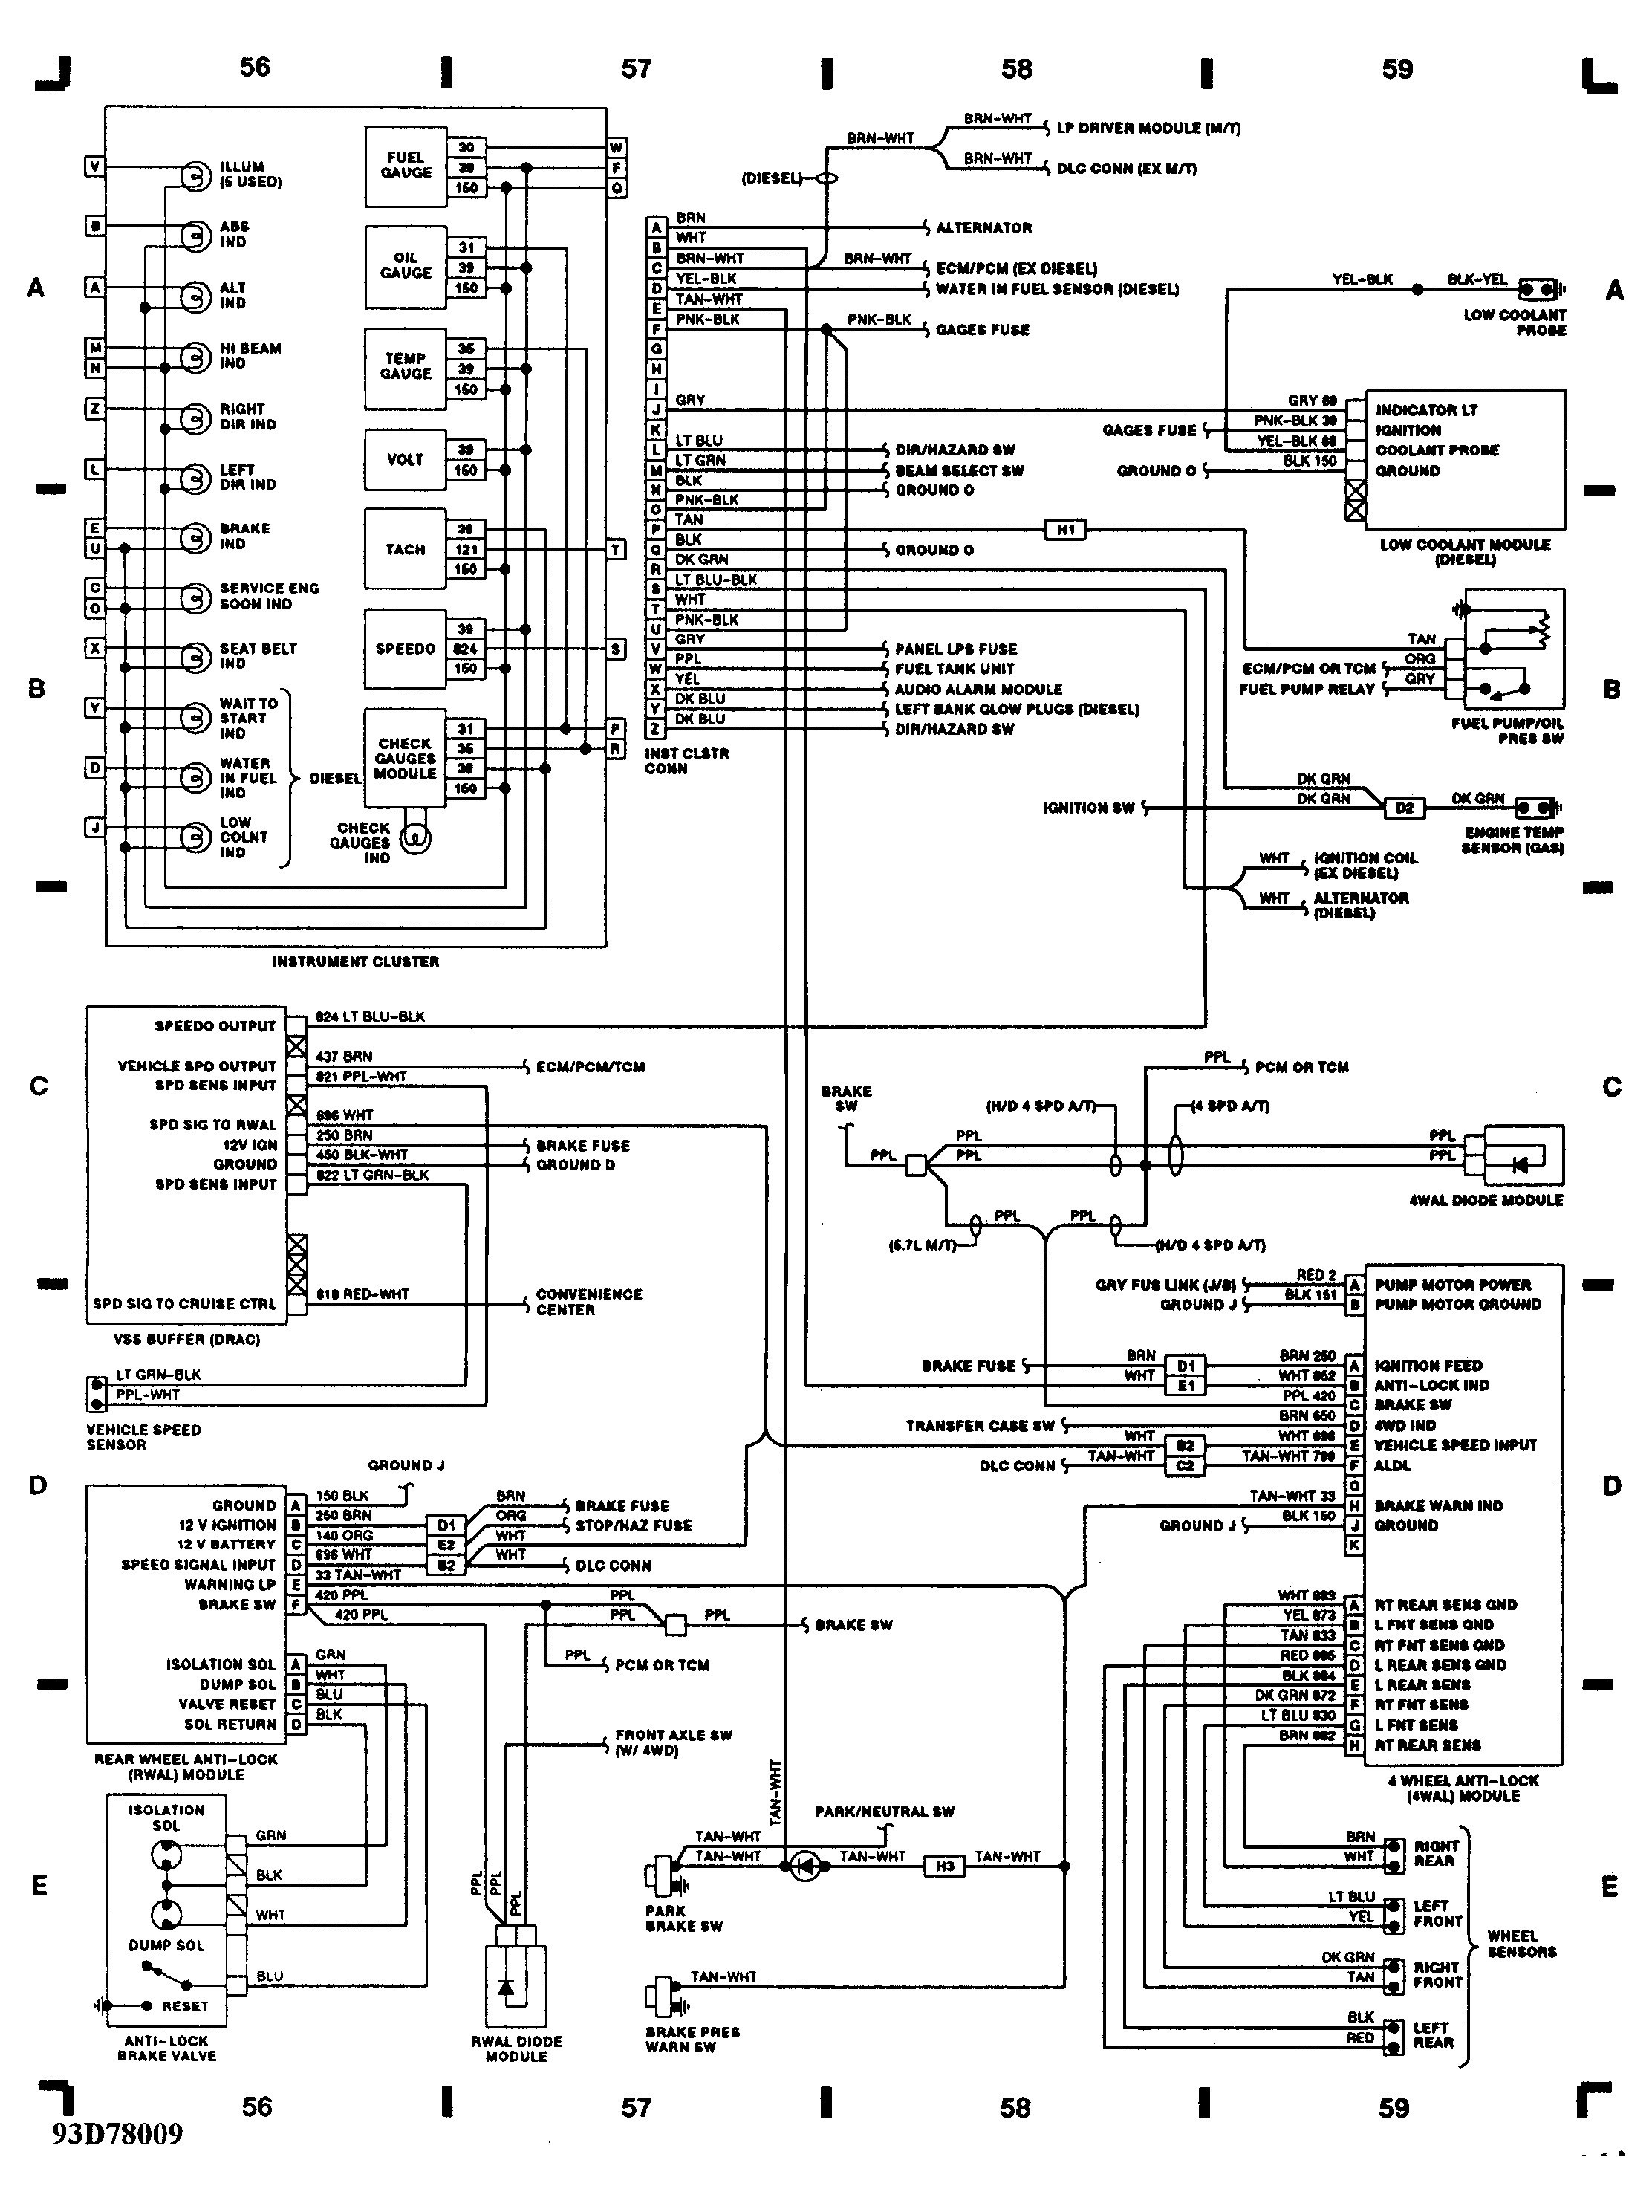 2002 Saturn Sl2 Engine Diagram 2002 Ls1 Engine Diagram Another Blog About Wiring Diagram • Of 2002 Saturn Sl2 Engine Diagram Saturn Steering Column Wiring Diagram Worksheet and Wiring Diagram •